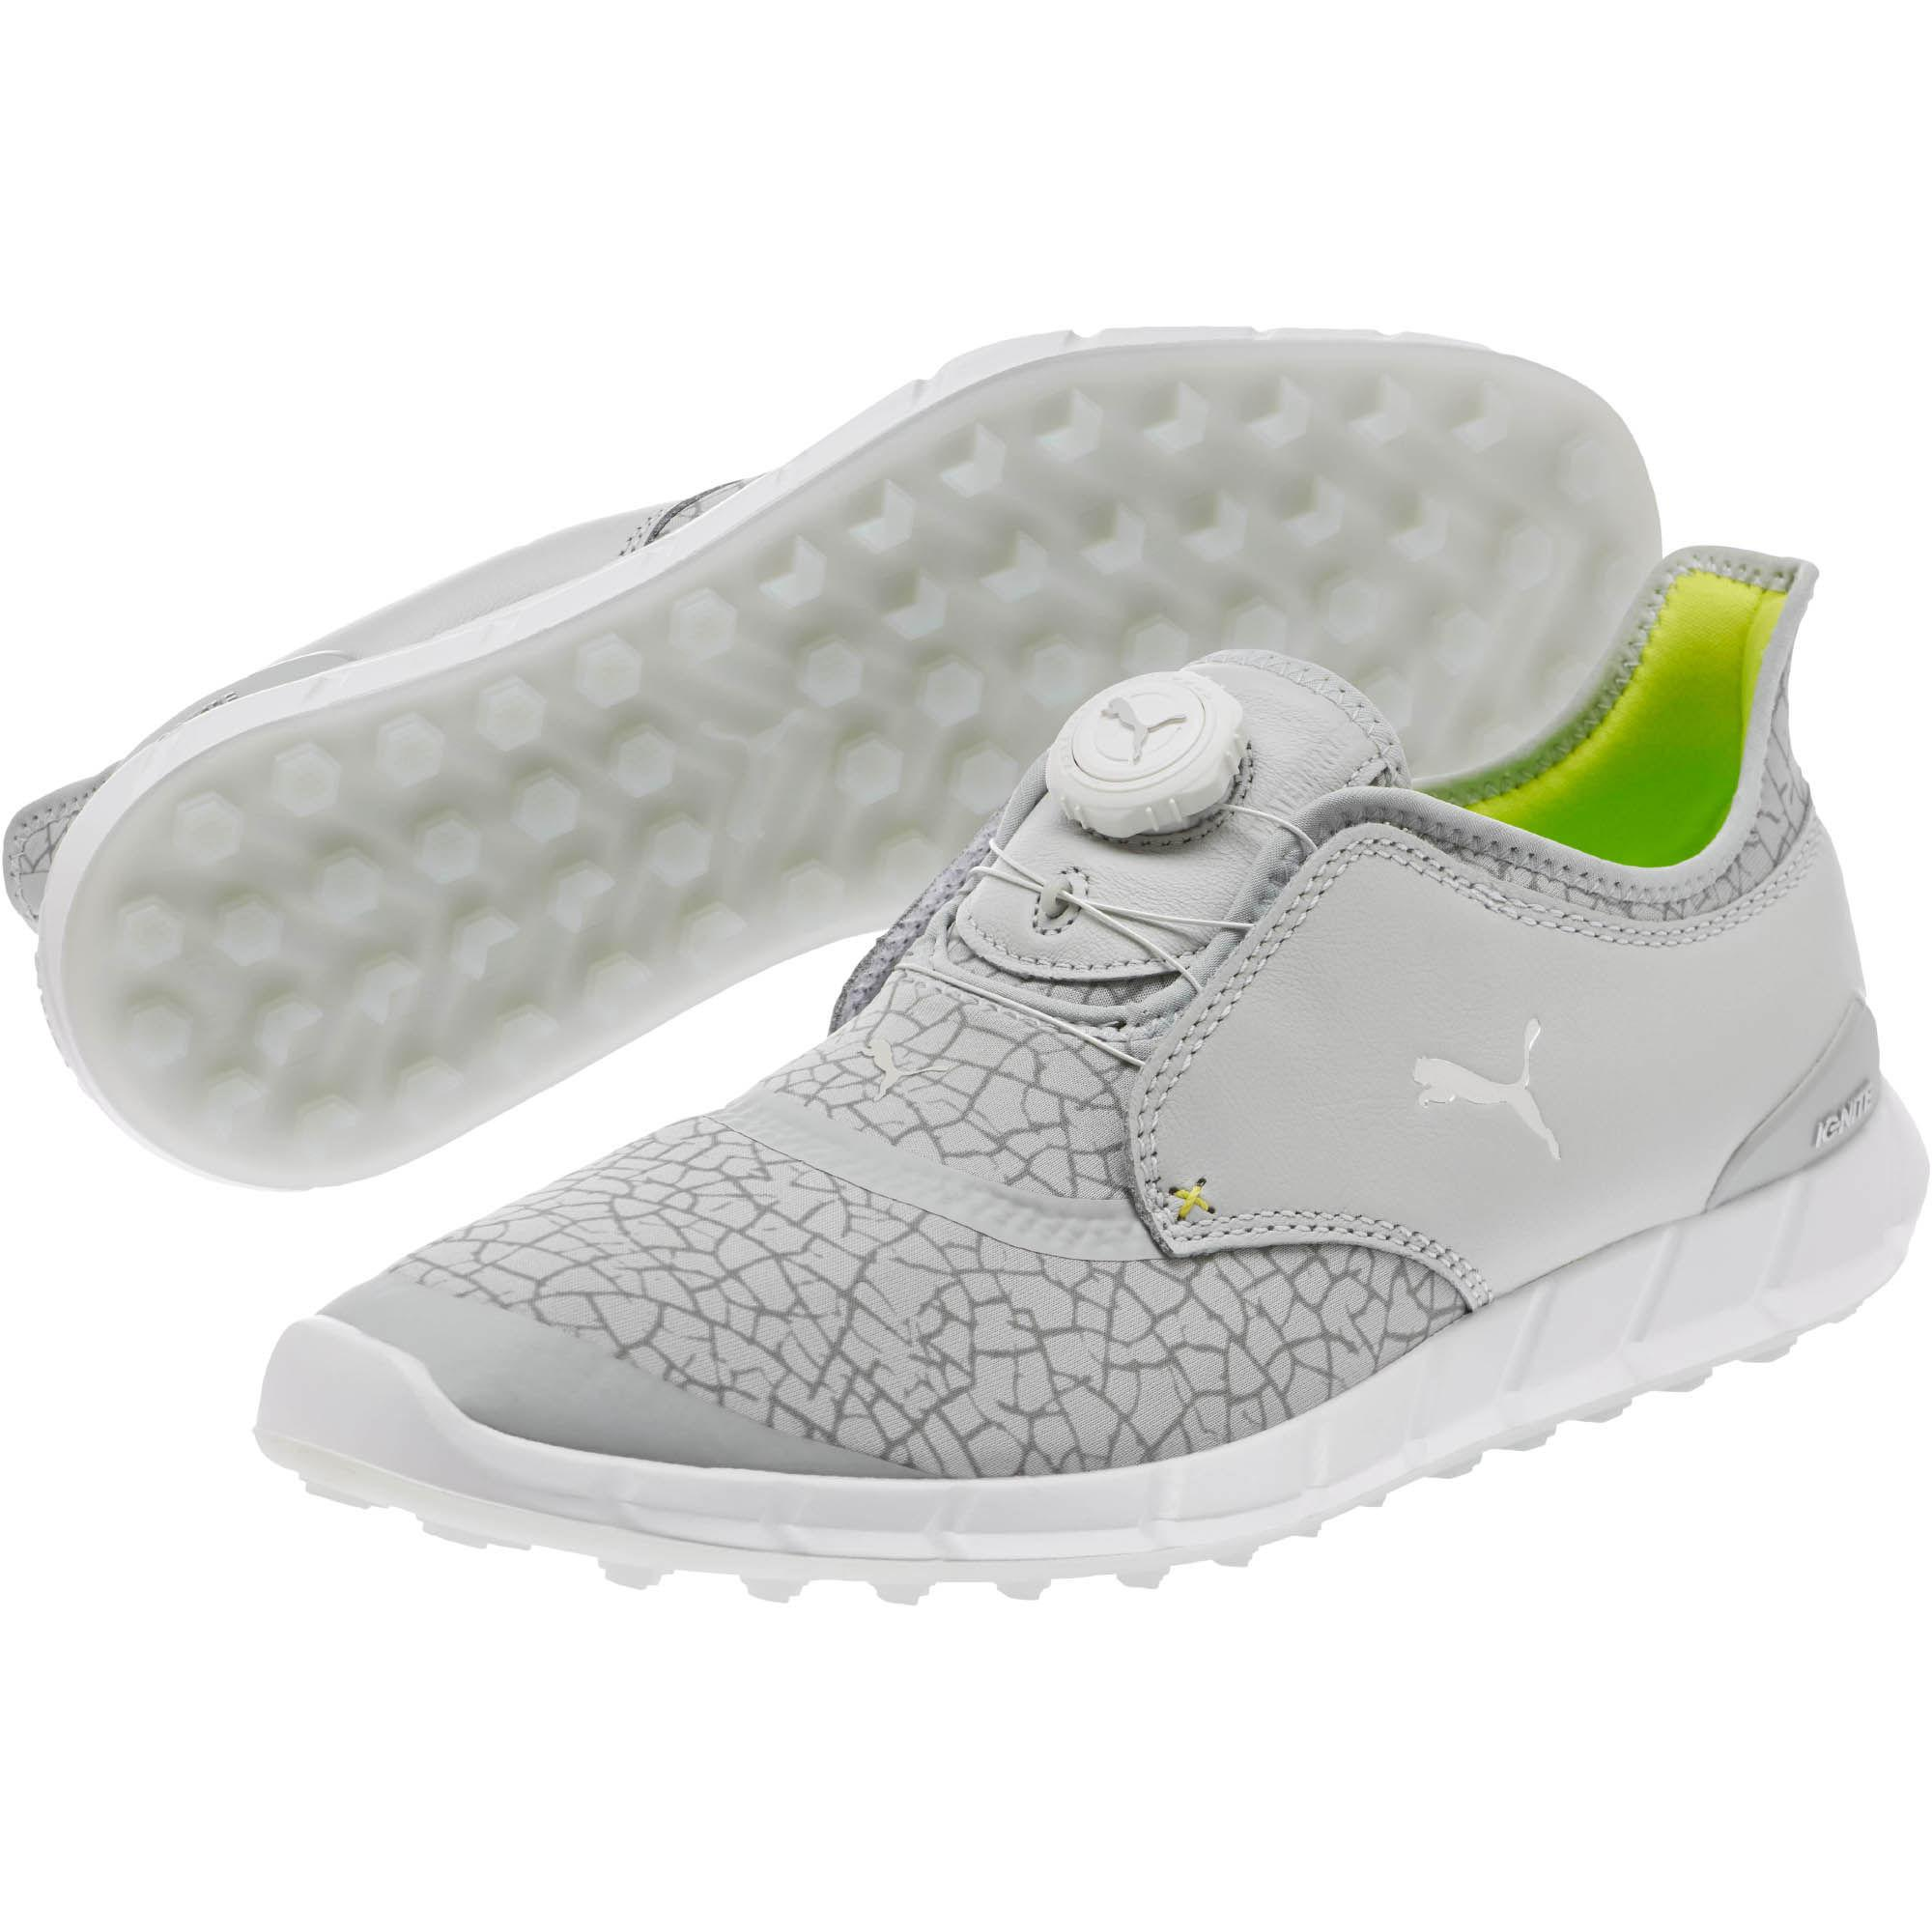 b358b3a697b Lyst - PUMA Ignite Disc Extreme Men s Golf Shoes in Gray for Men